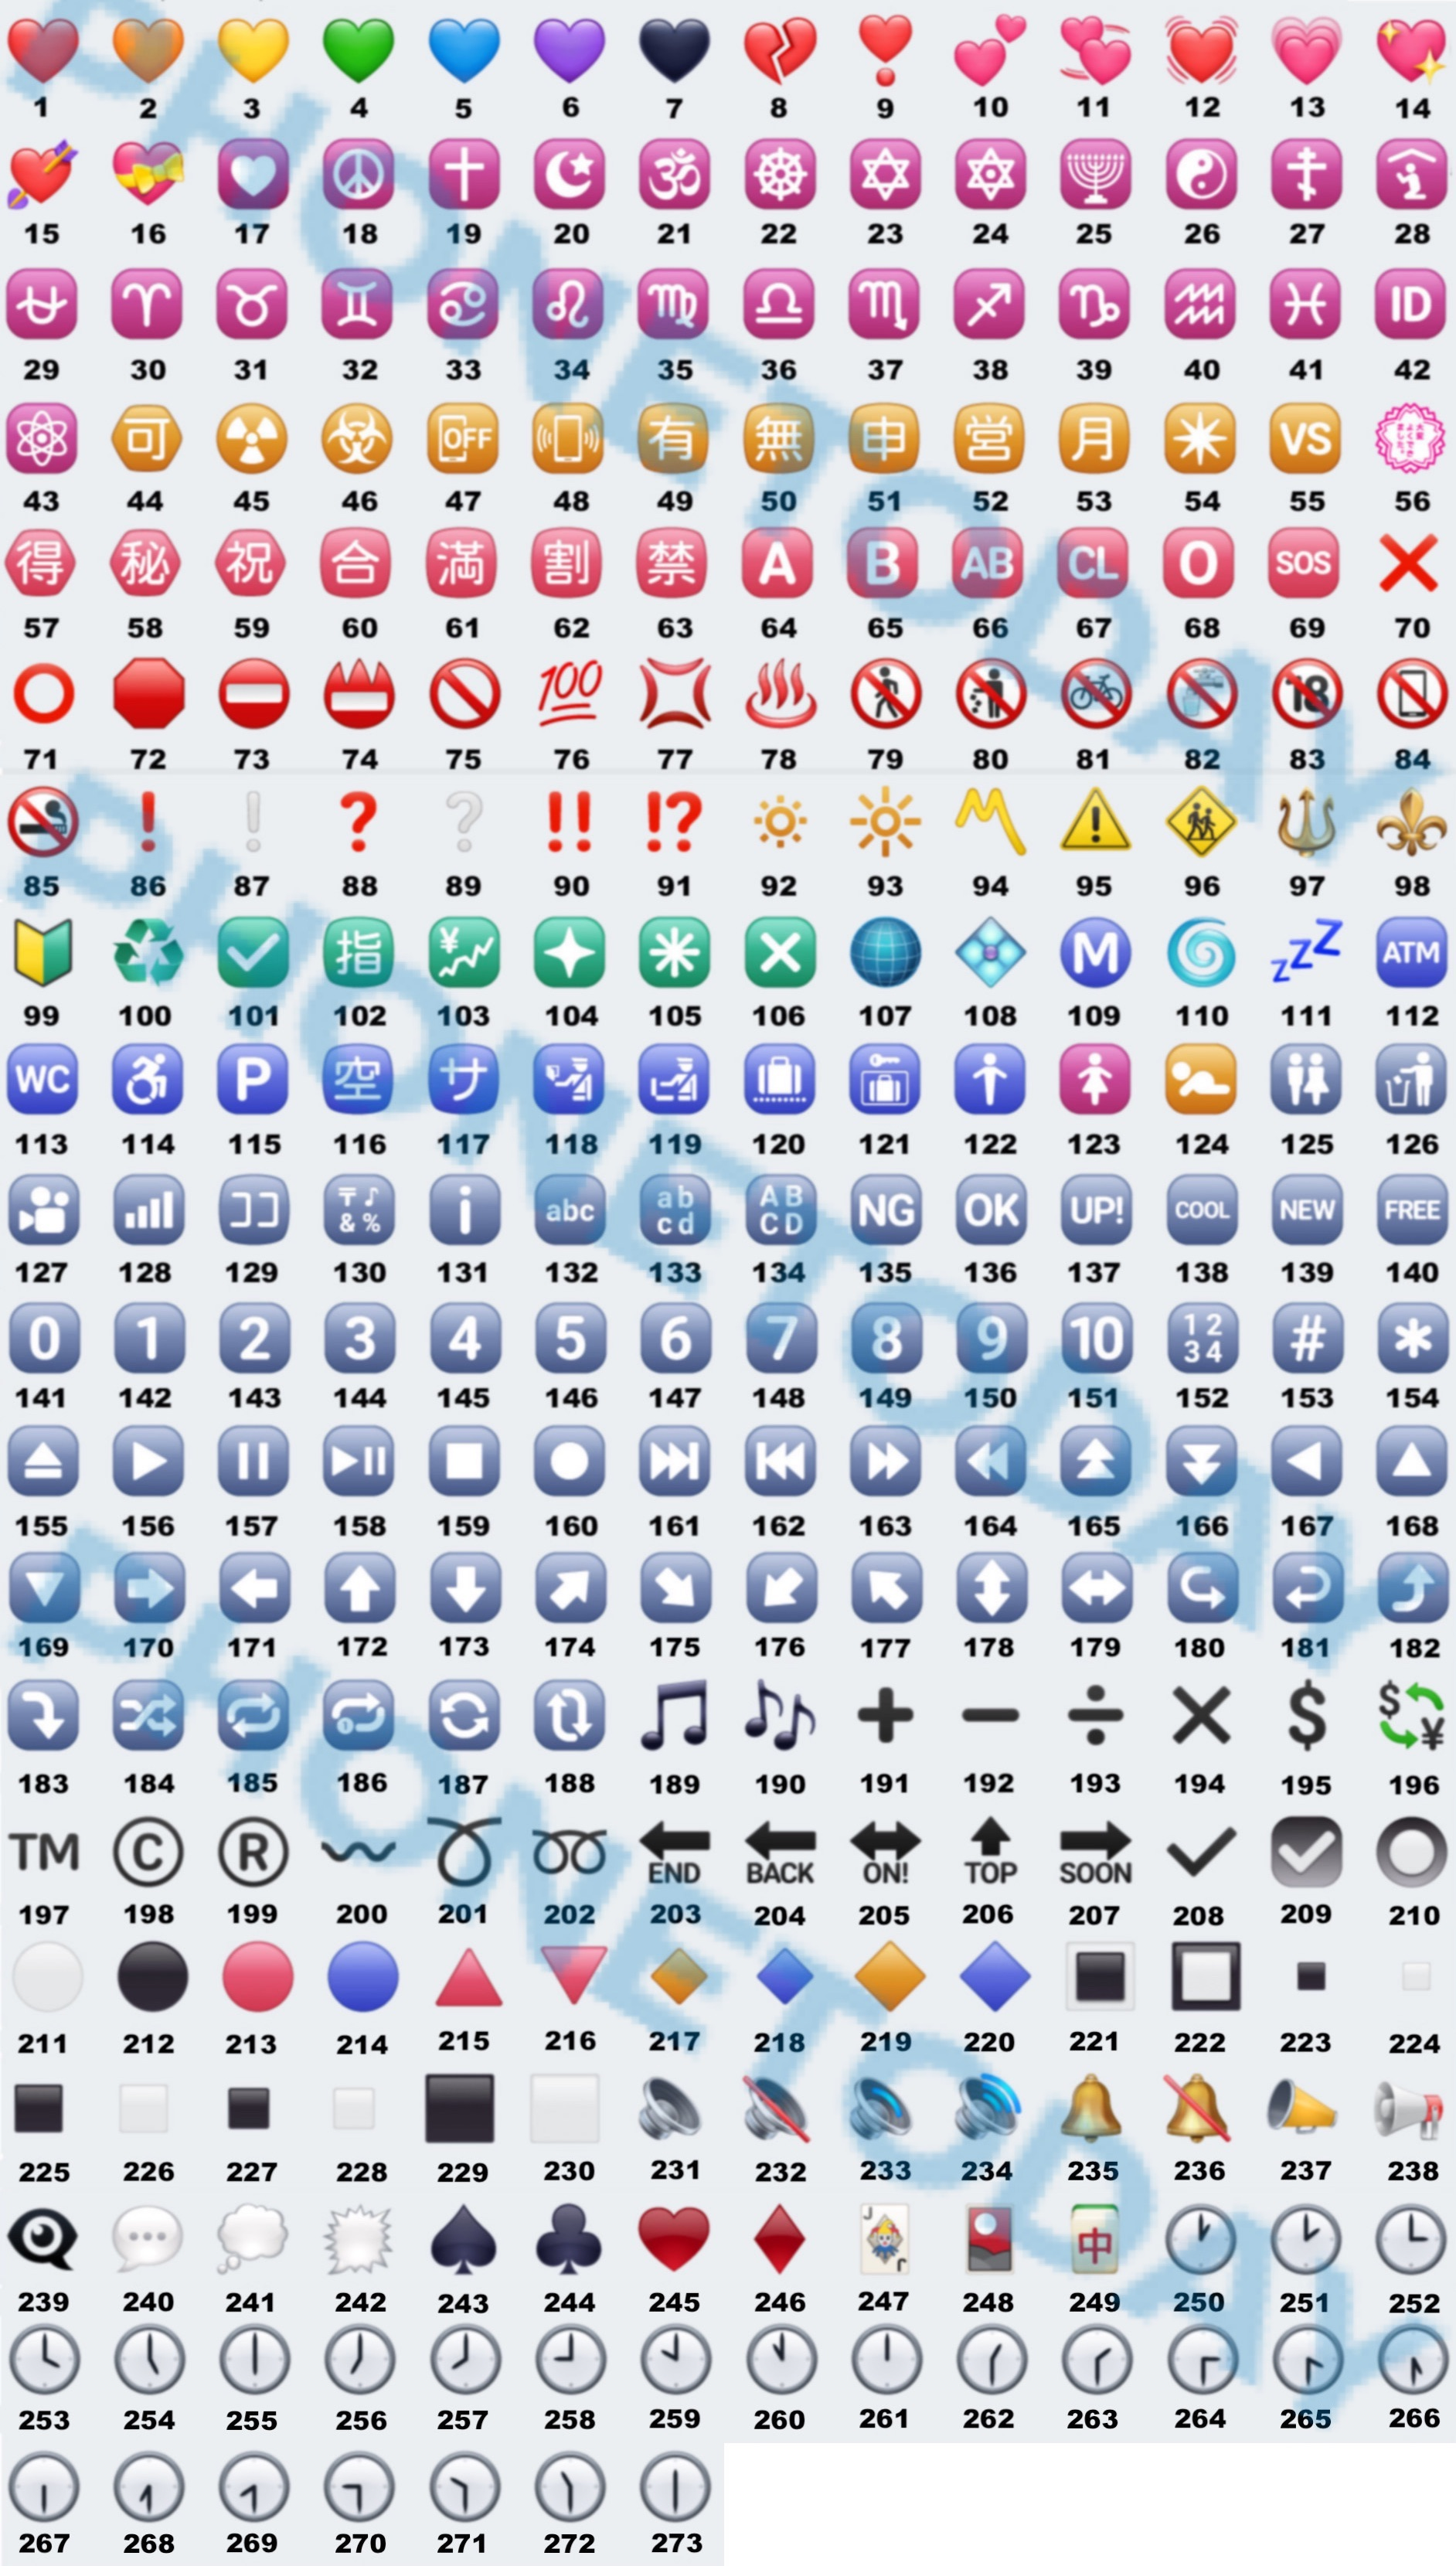 Emoticon WhatsApp: significato simboli